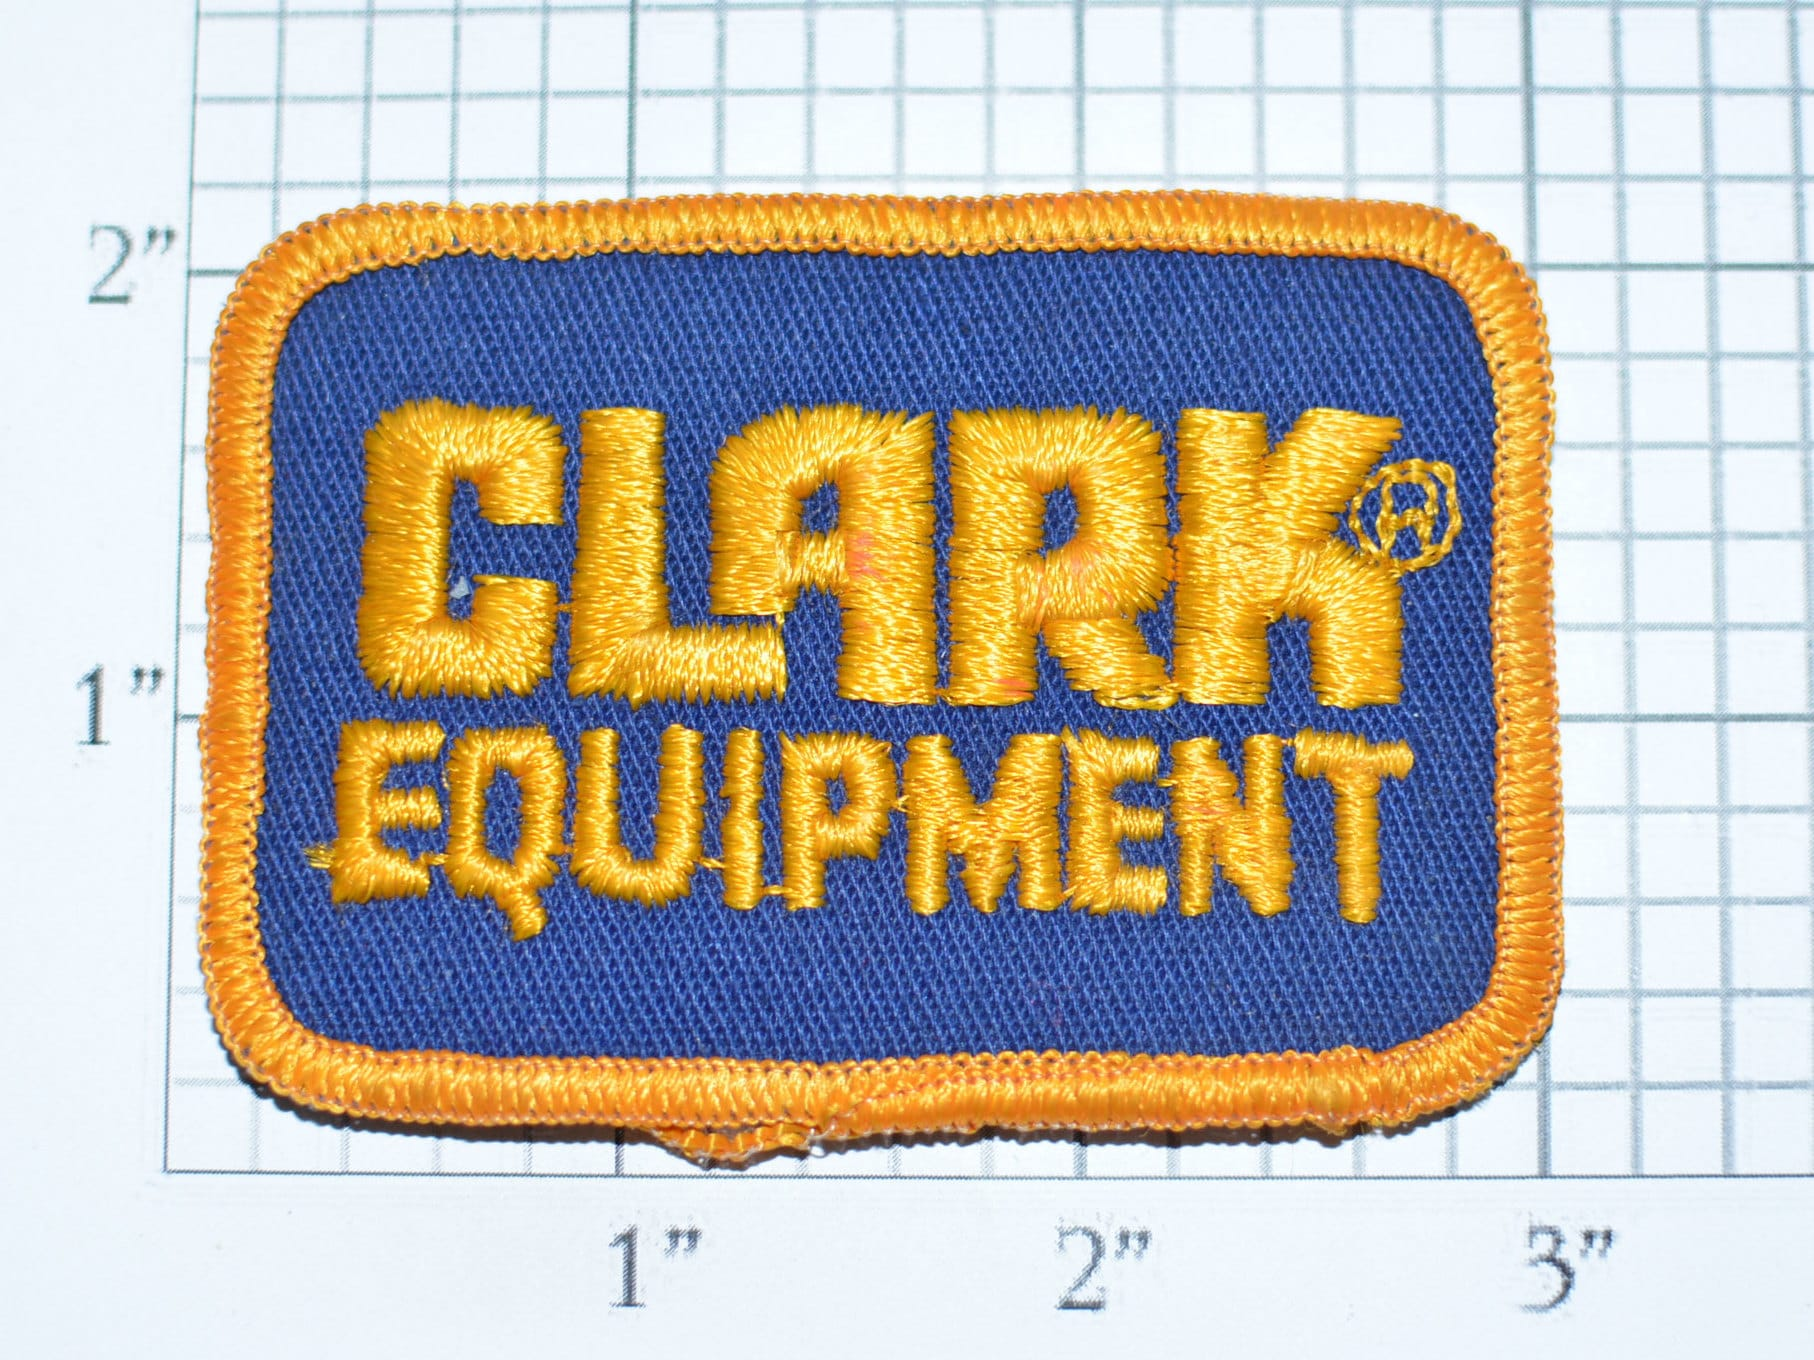 Clark Equipment Forklift Vintage Embroidered Iron-on